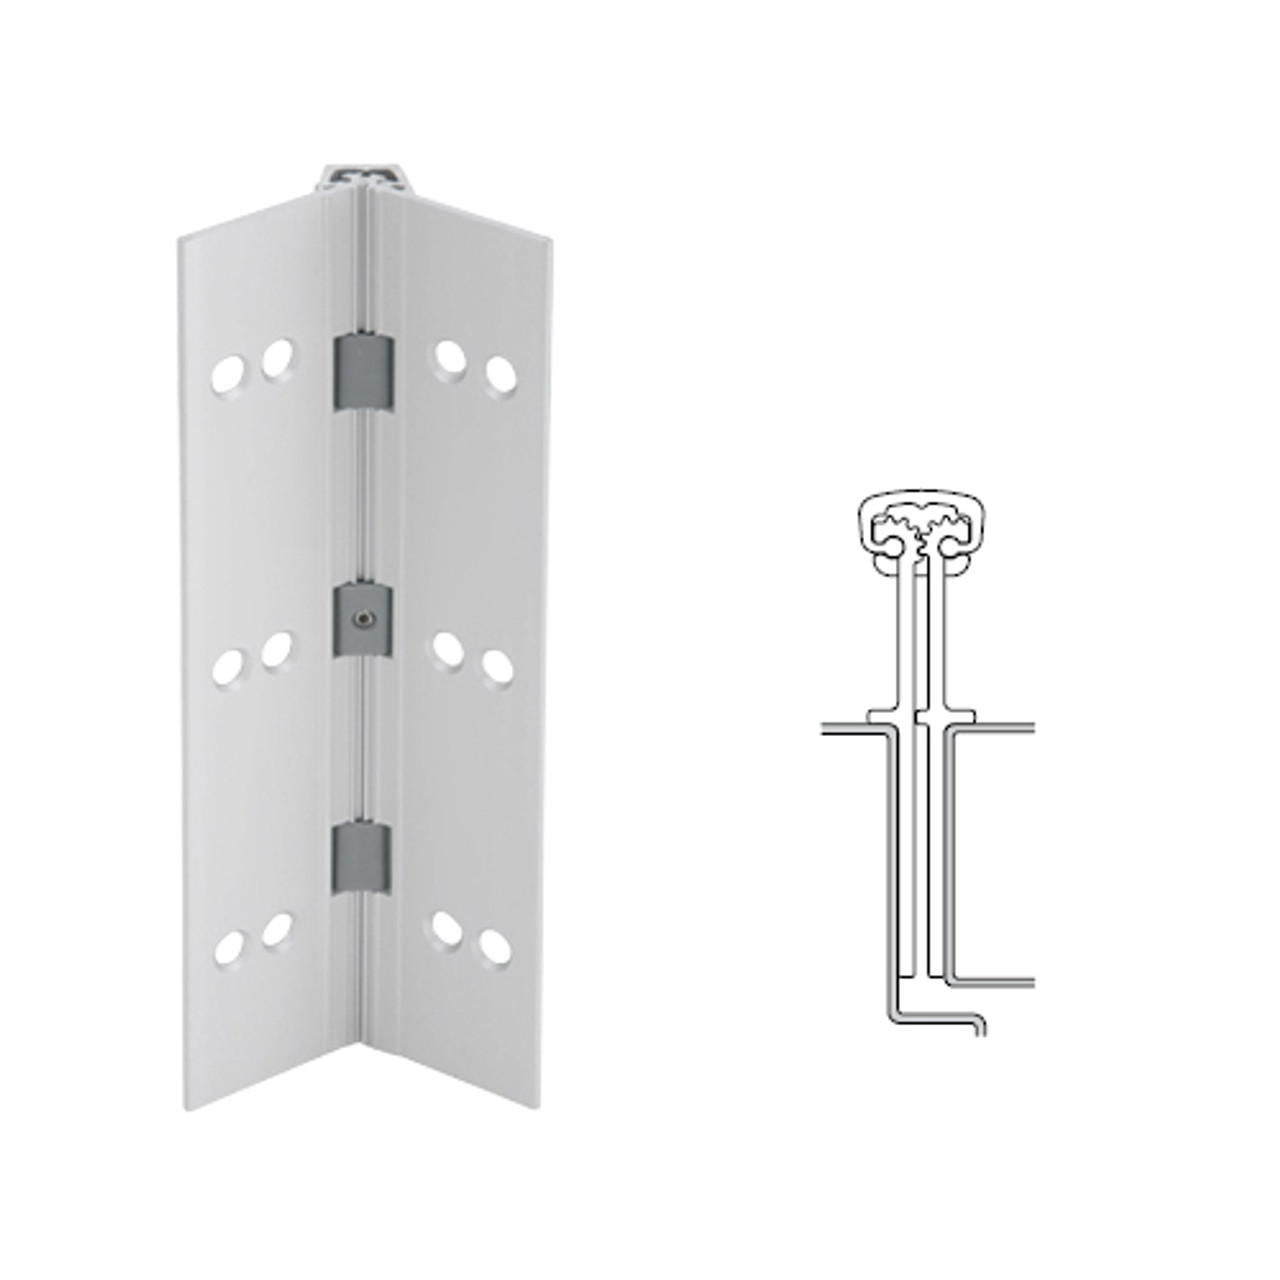 040XY-US28-120-TF IVES Full Mortise Continuous Geared Hinges with Thread Forming Screws in Satin Aluminum